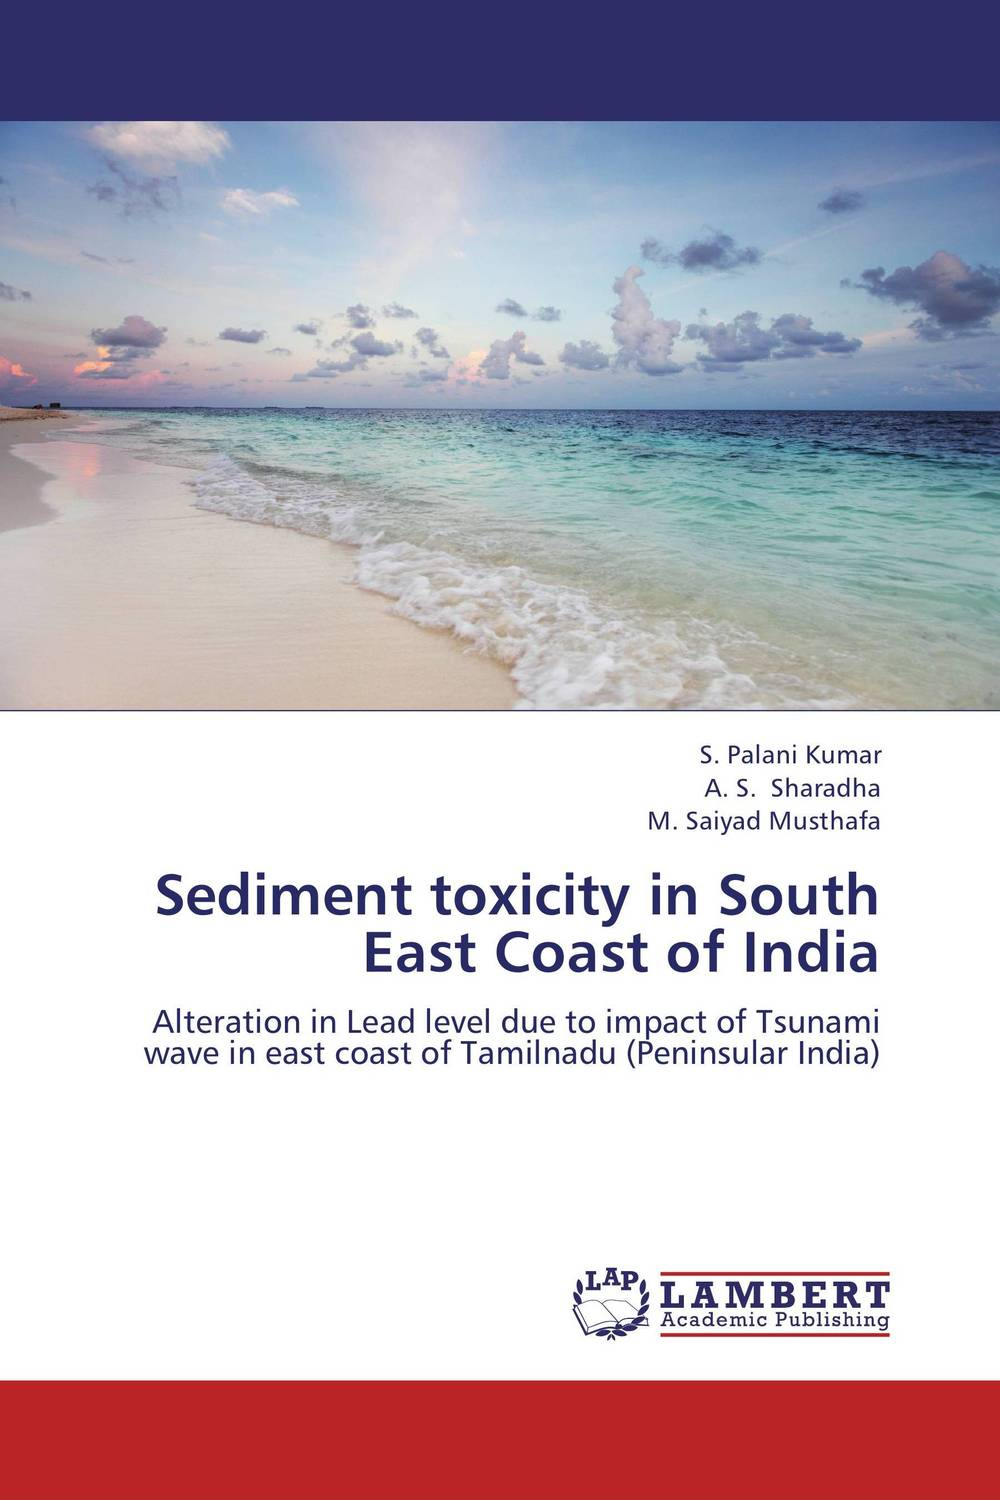 Sediment toxicity in South East Coast of India microbiological investigation of diarrheal outbreak in south india